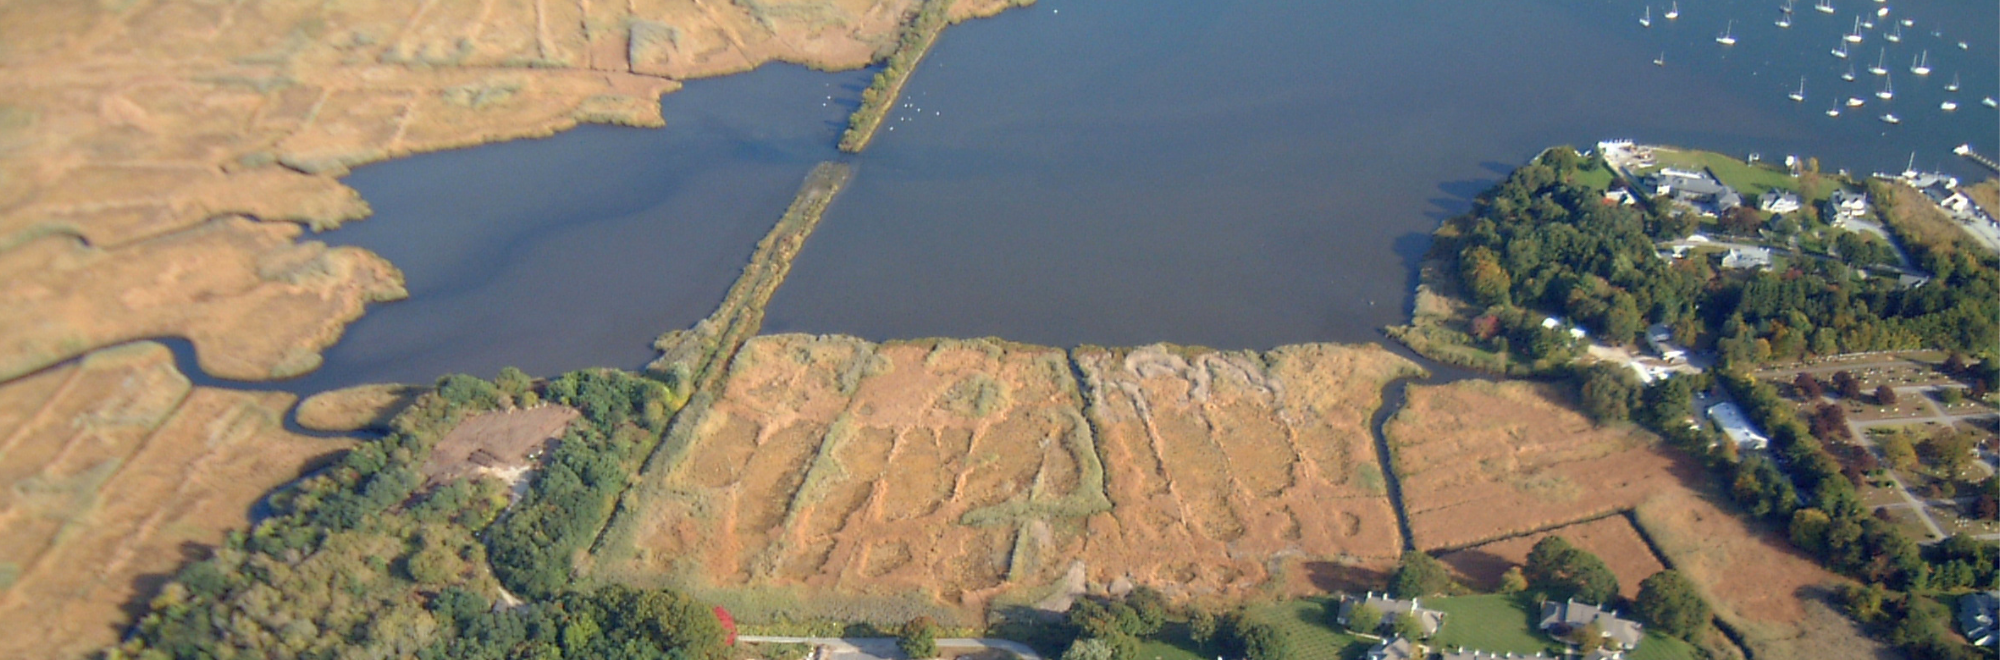 aerial view of Griswold Point in Connecticut